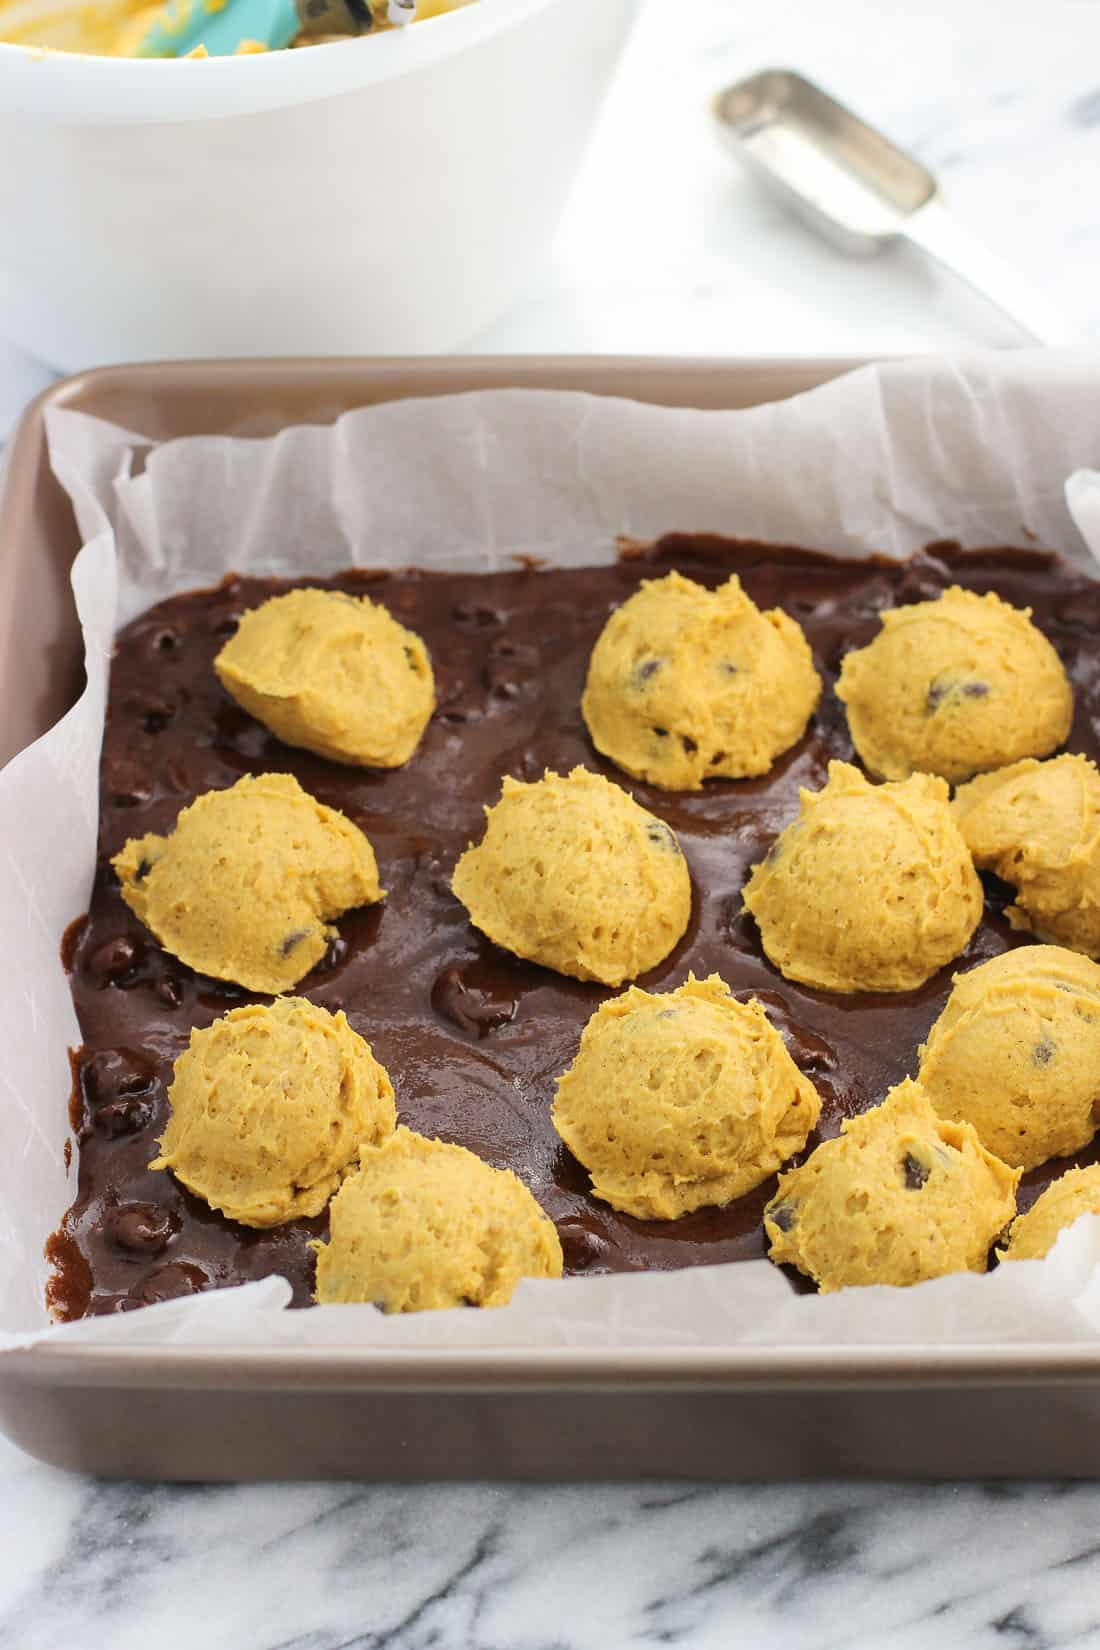 Brownie batter in a parchment-lined baking dish with globs of pumpkin batter scattered on top before being swirled in